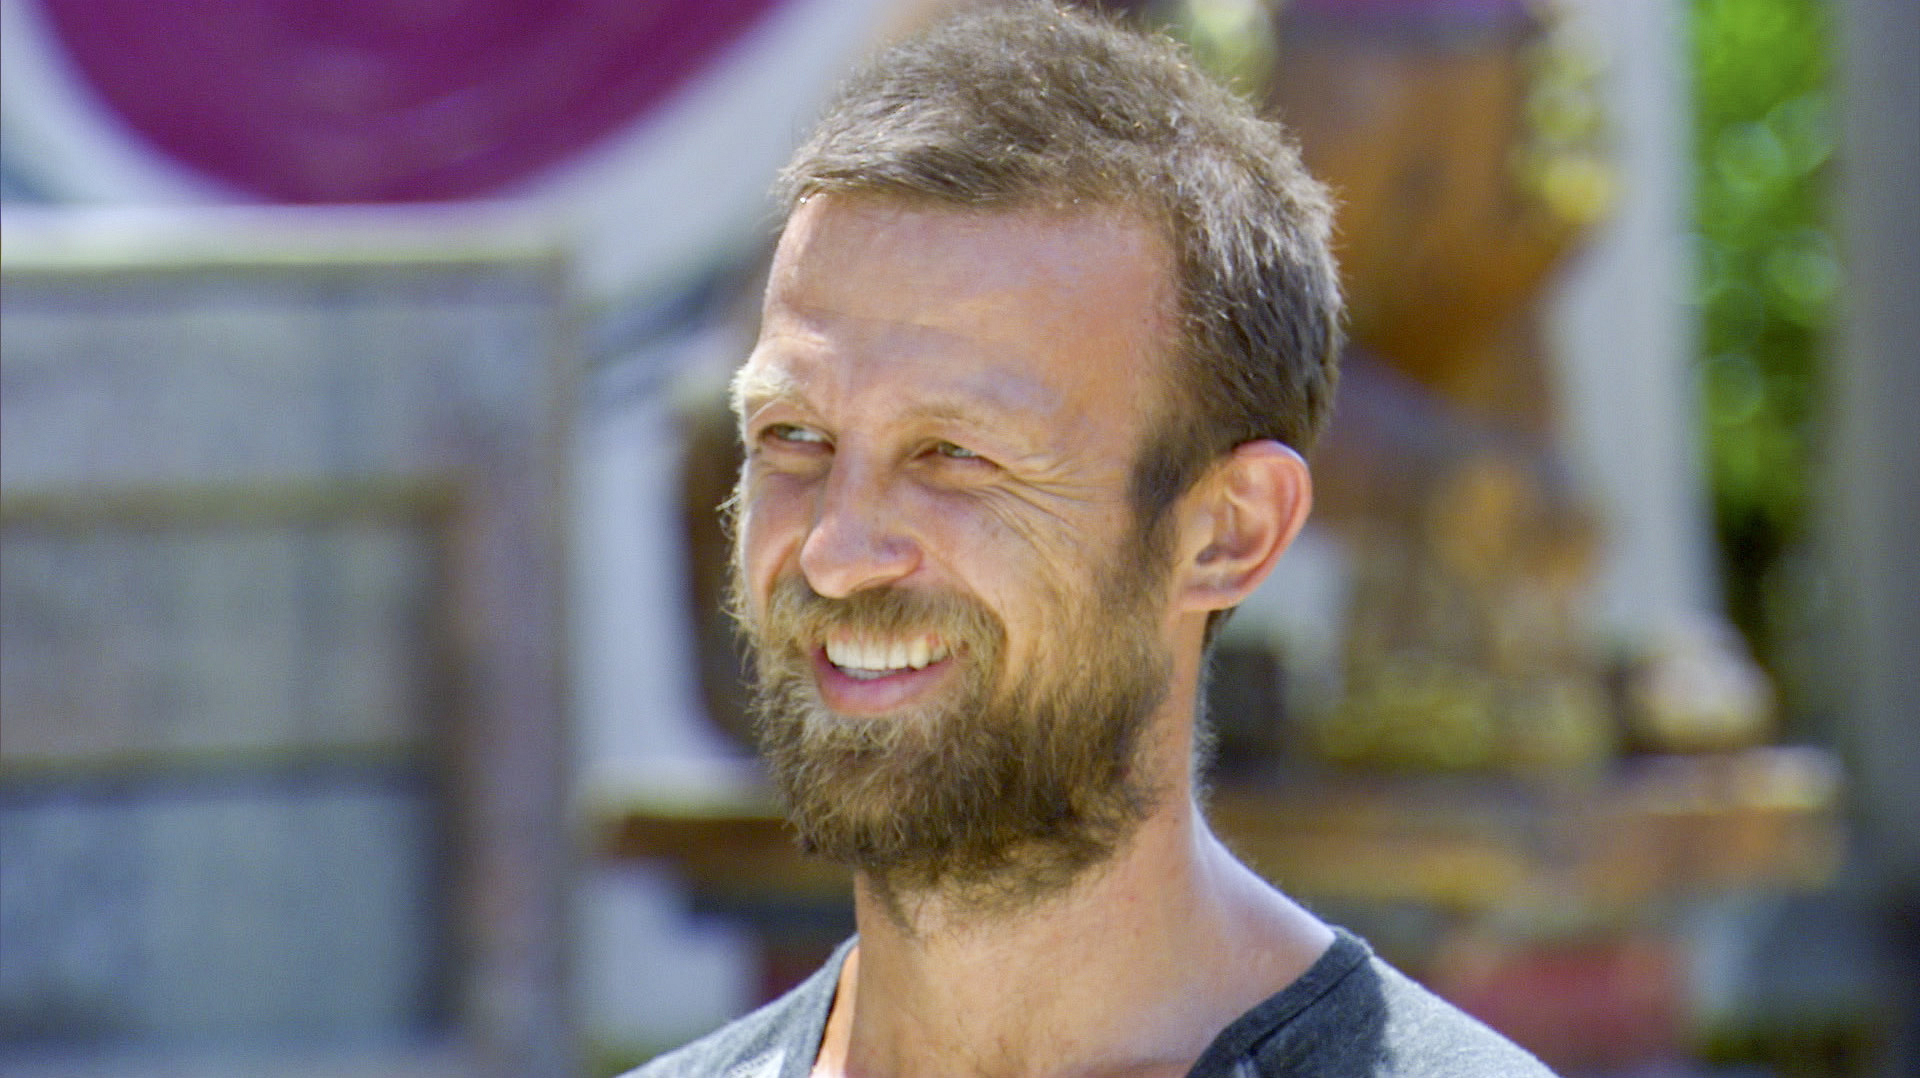 Vytas in Season 27 Episode 11